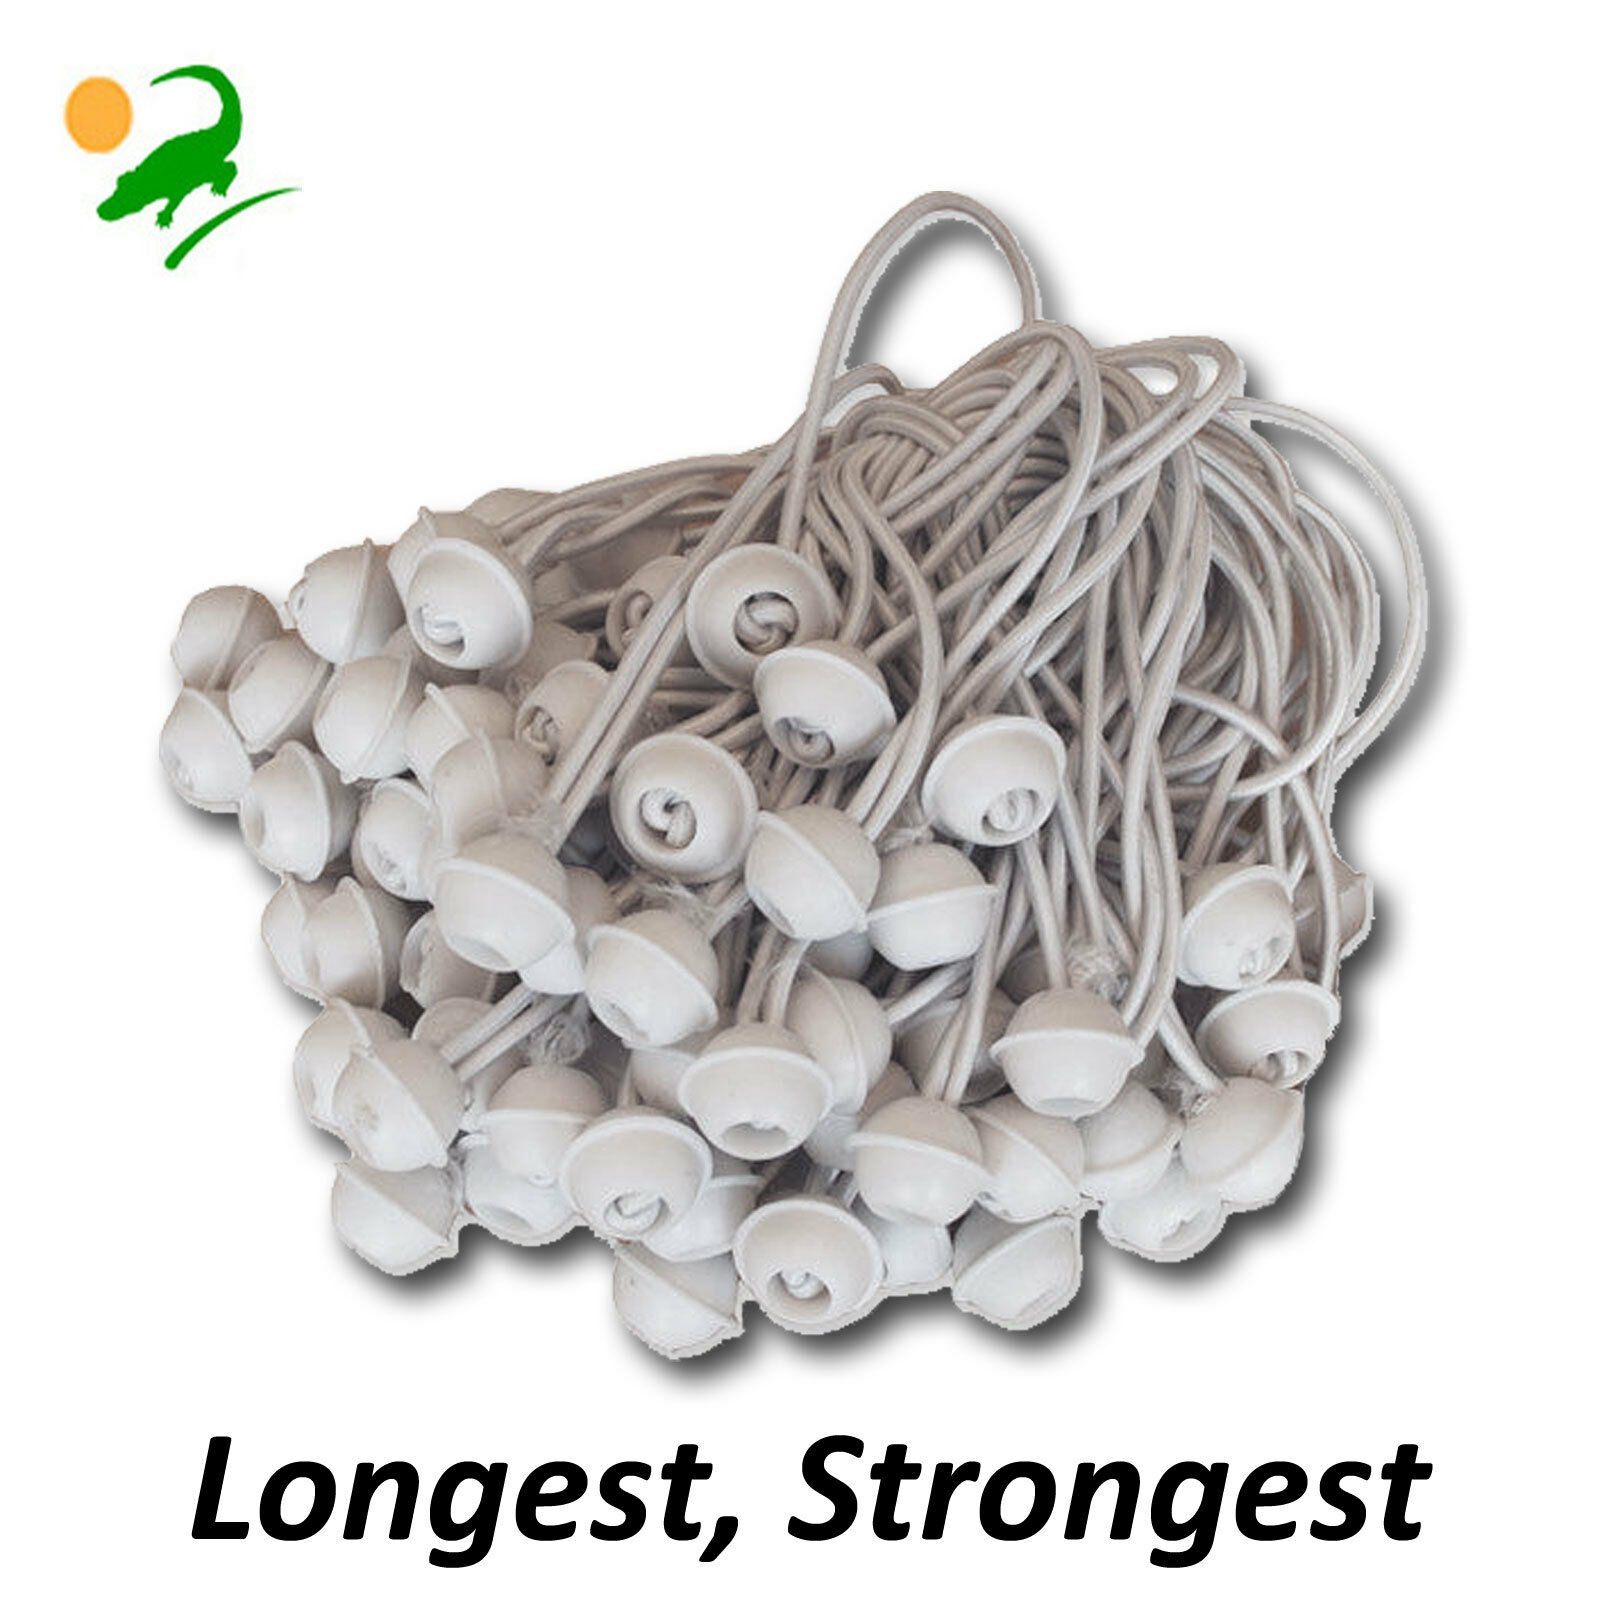 150 XL Bungee Toggle Cord Straps Banner Ties Tent Tarpaulin Tarpaulin Tarpaulin Marquee Gazebo Bungy 5eb10a